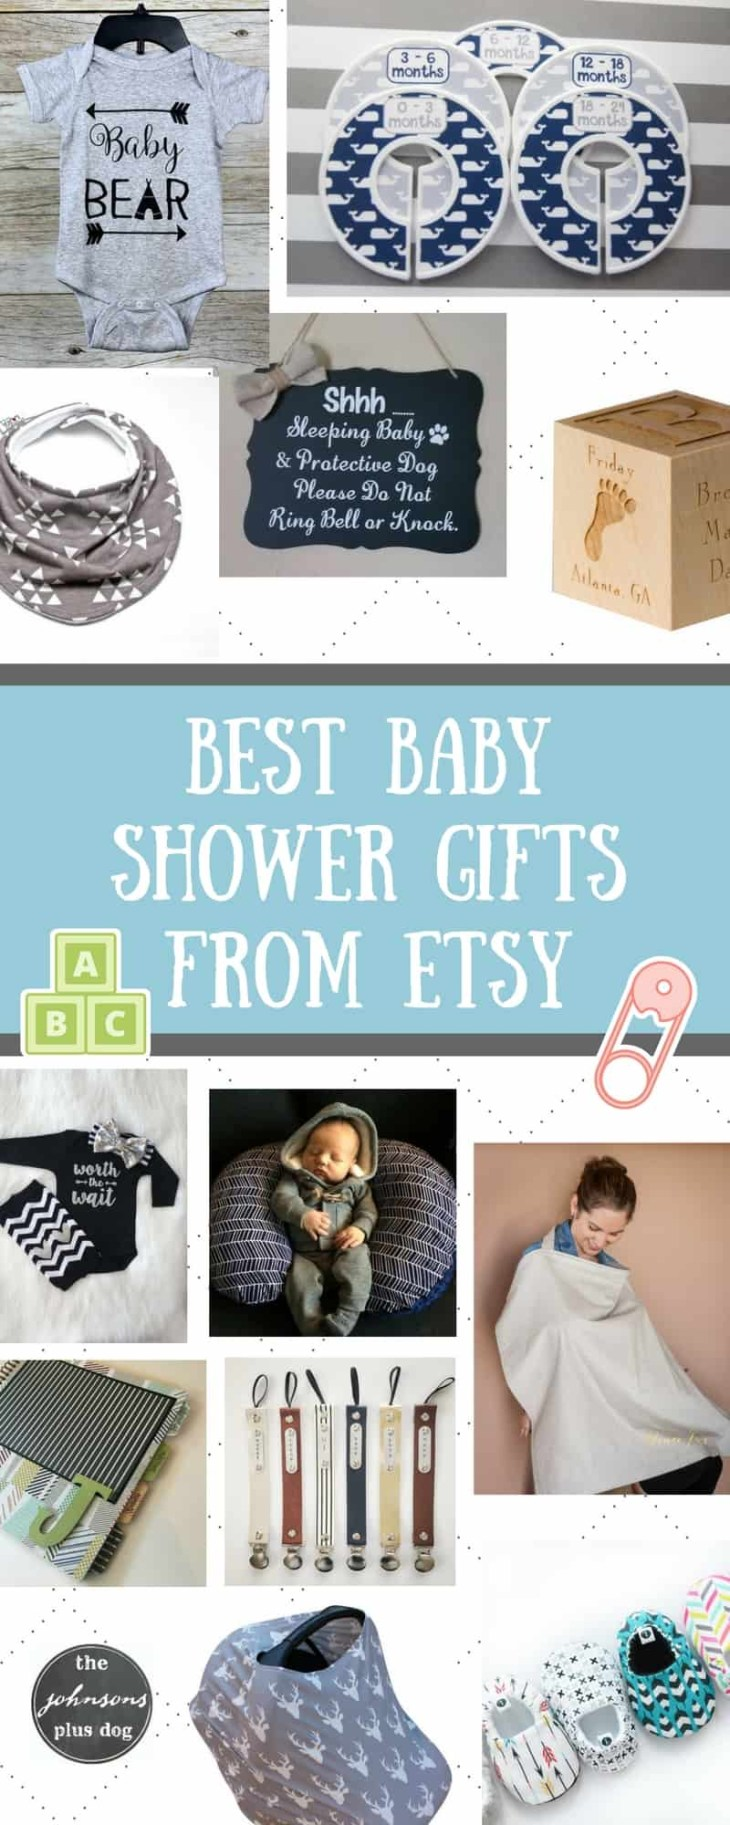 Best Baby Shower Gifts From Etsy